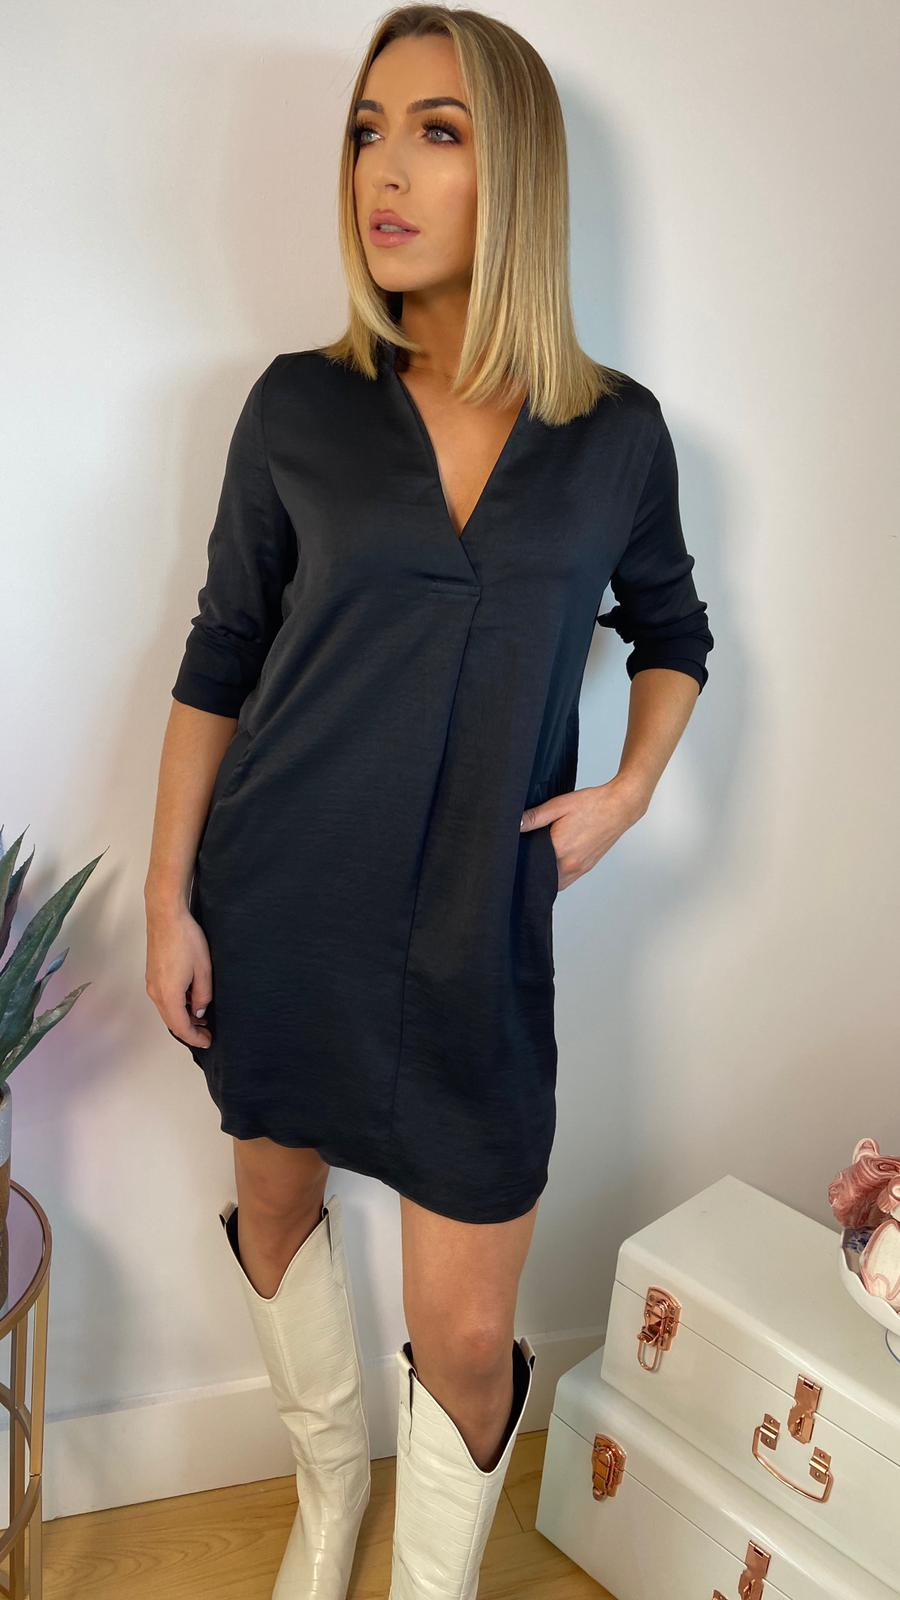 SHELLY SILKY TUNIC DRESS - BLACK